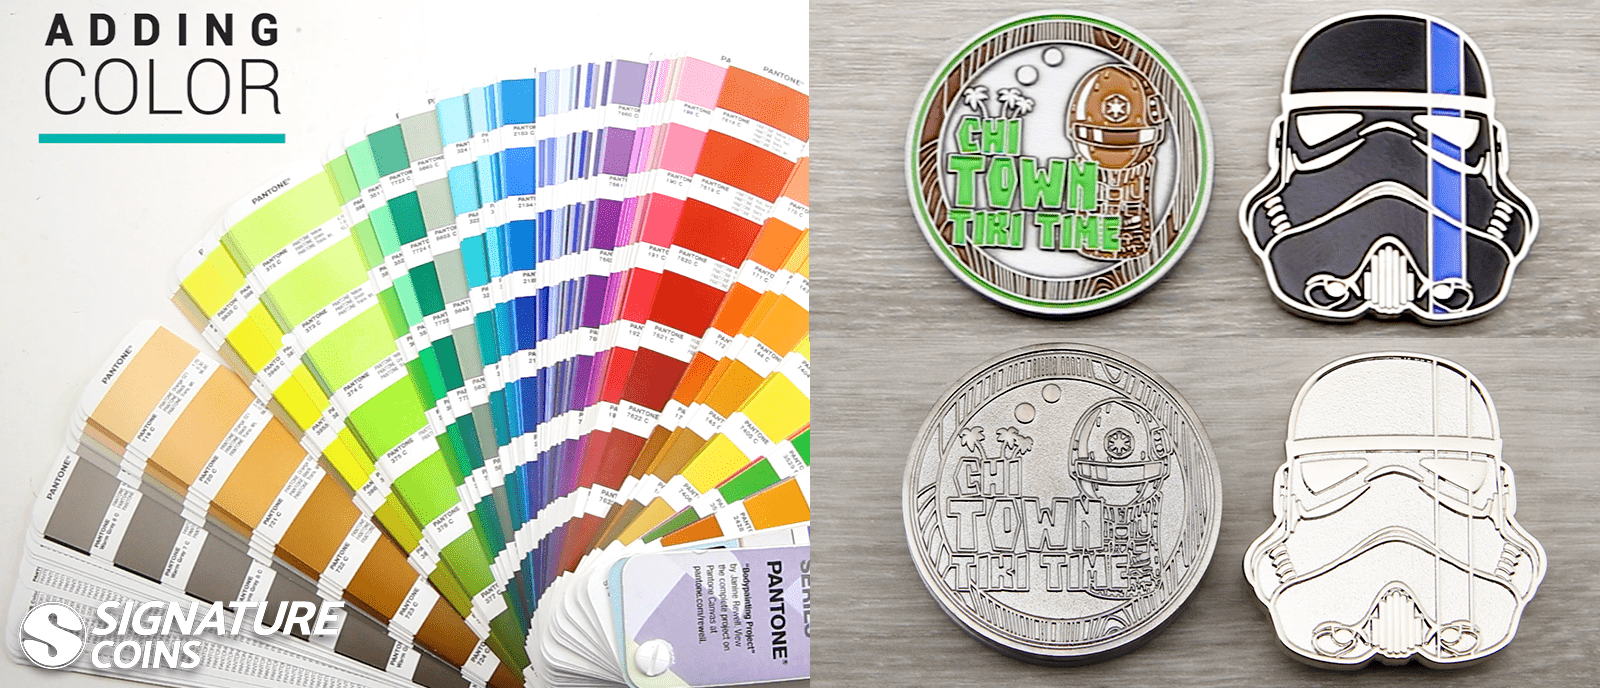 challenge coin - adding color